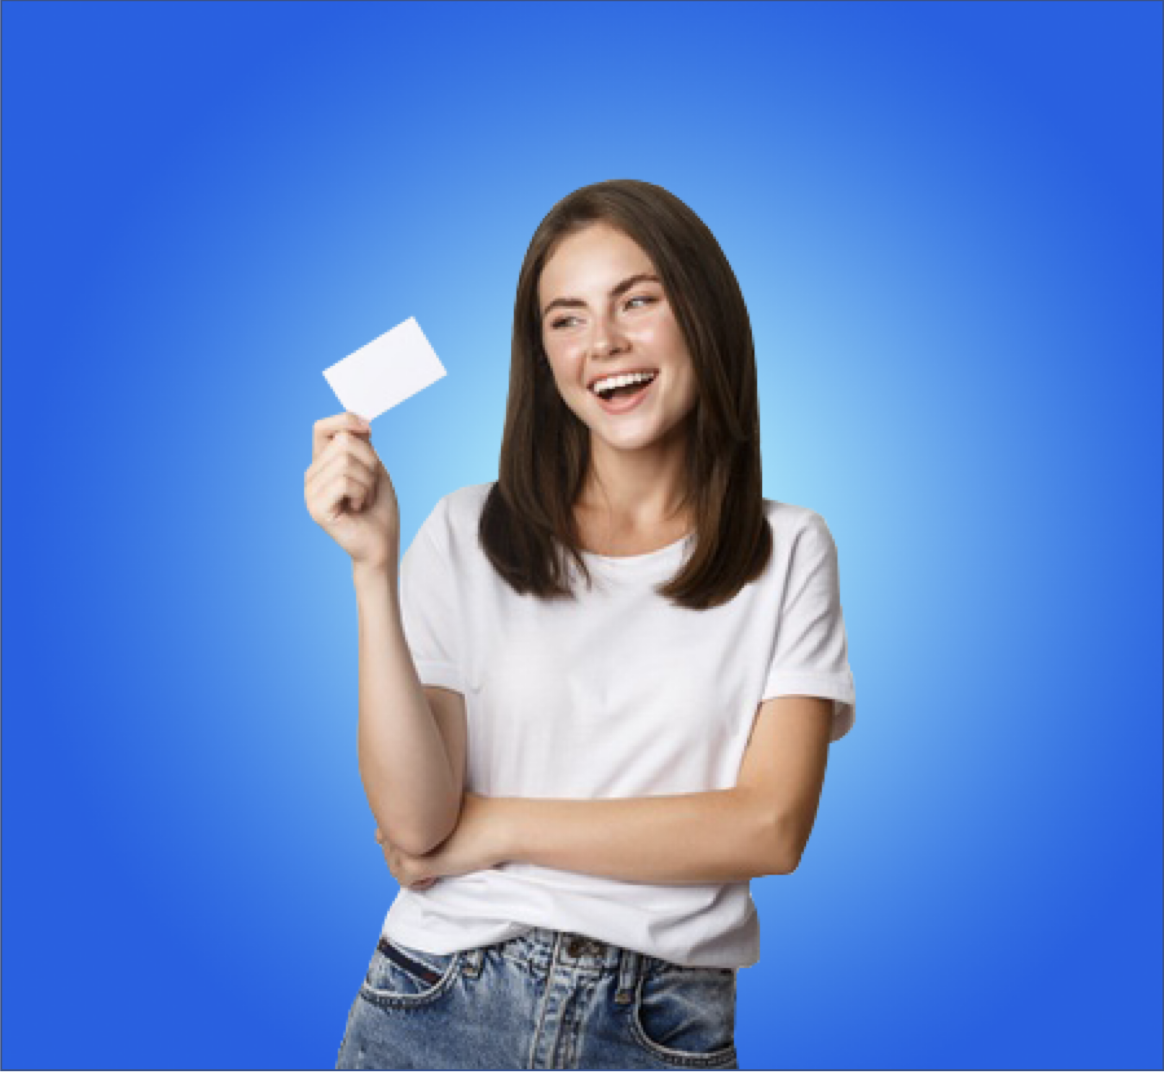 How can influencer marketing empower banks & raise consumer trust?